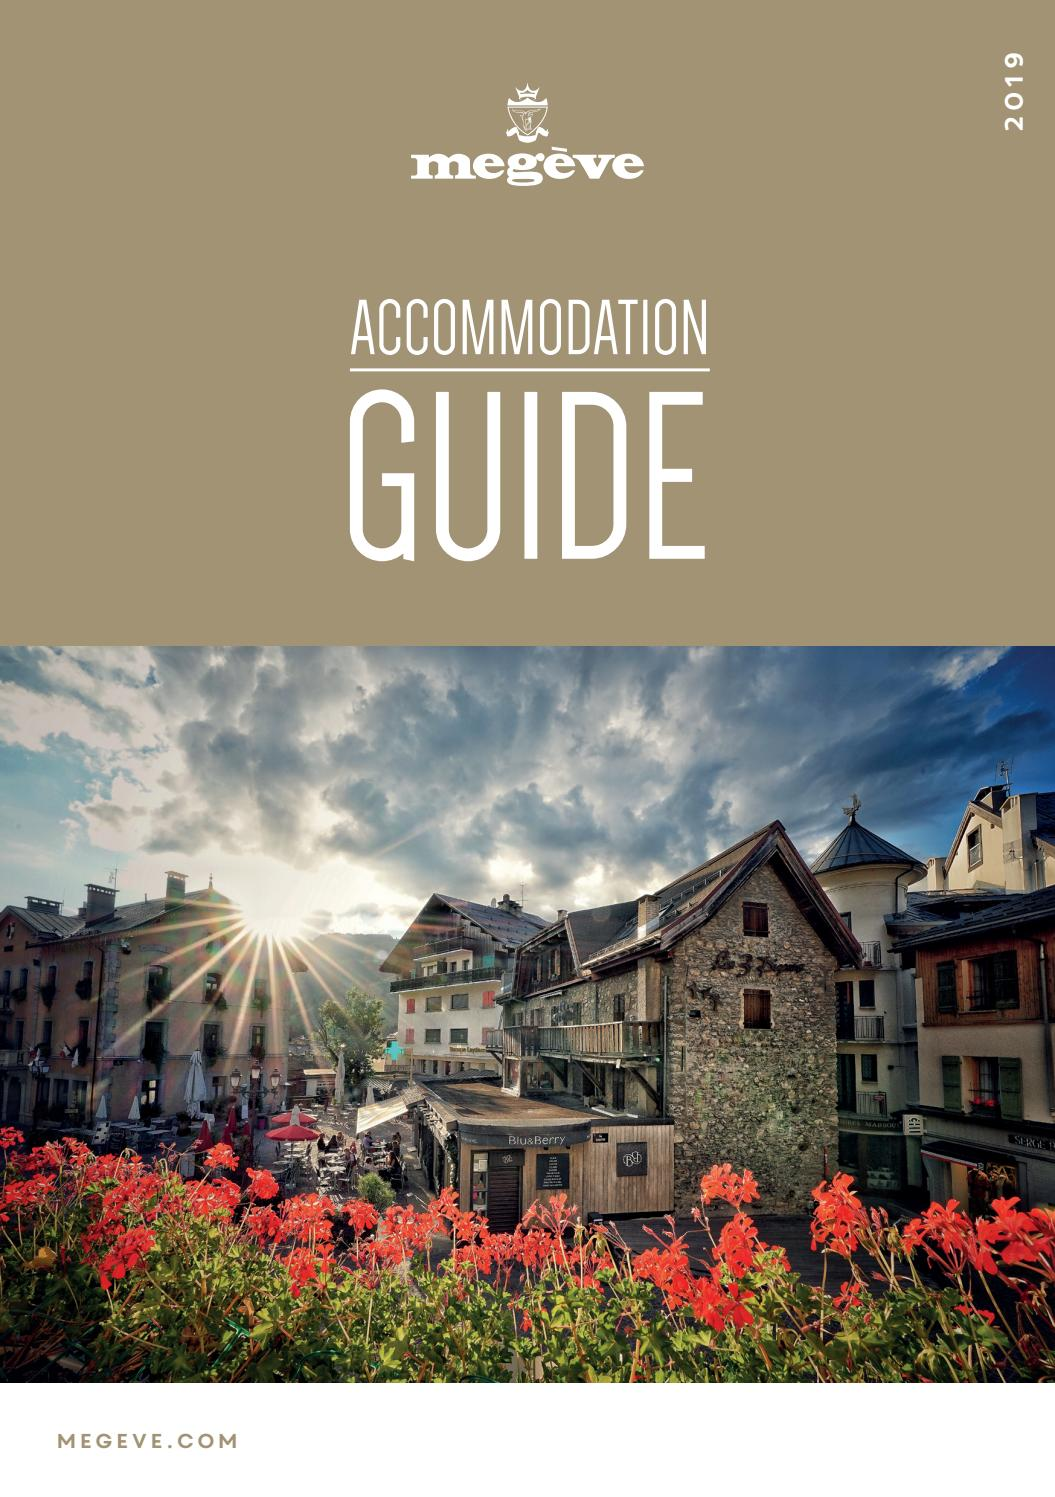 Office Tourisme Megeve Accommodation Guide Megève 2019